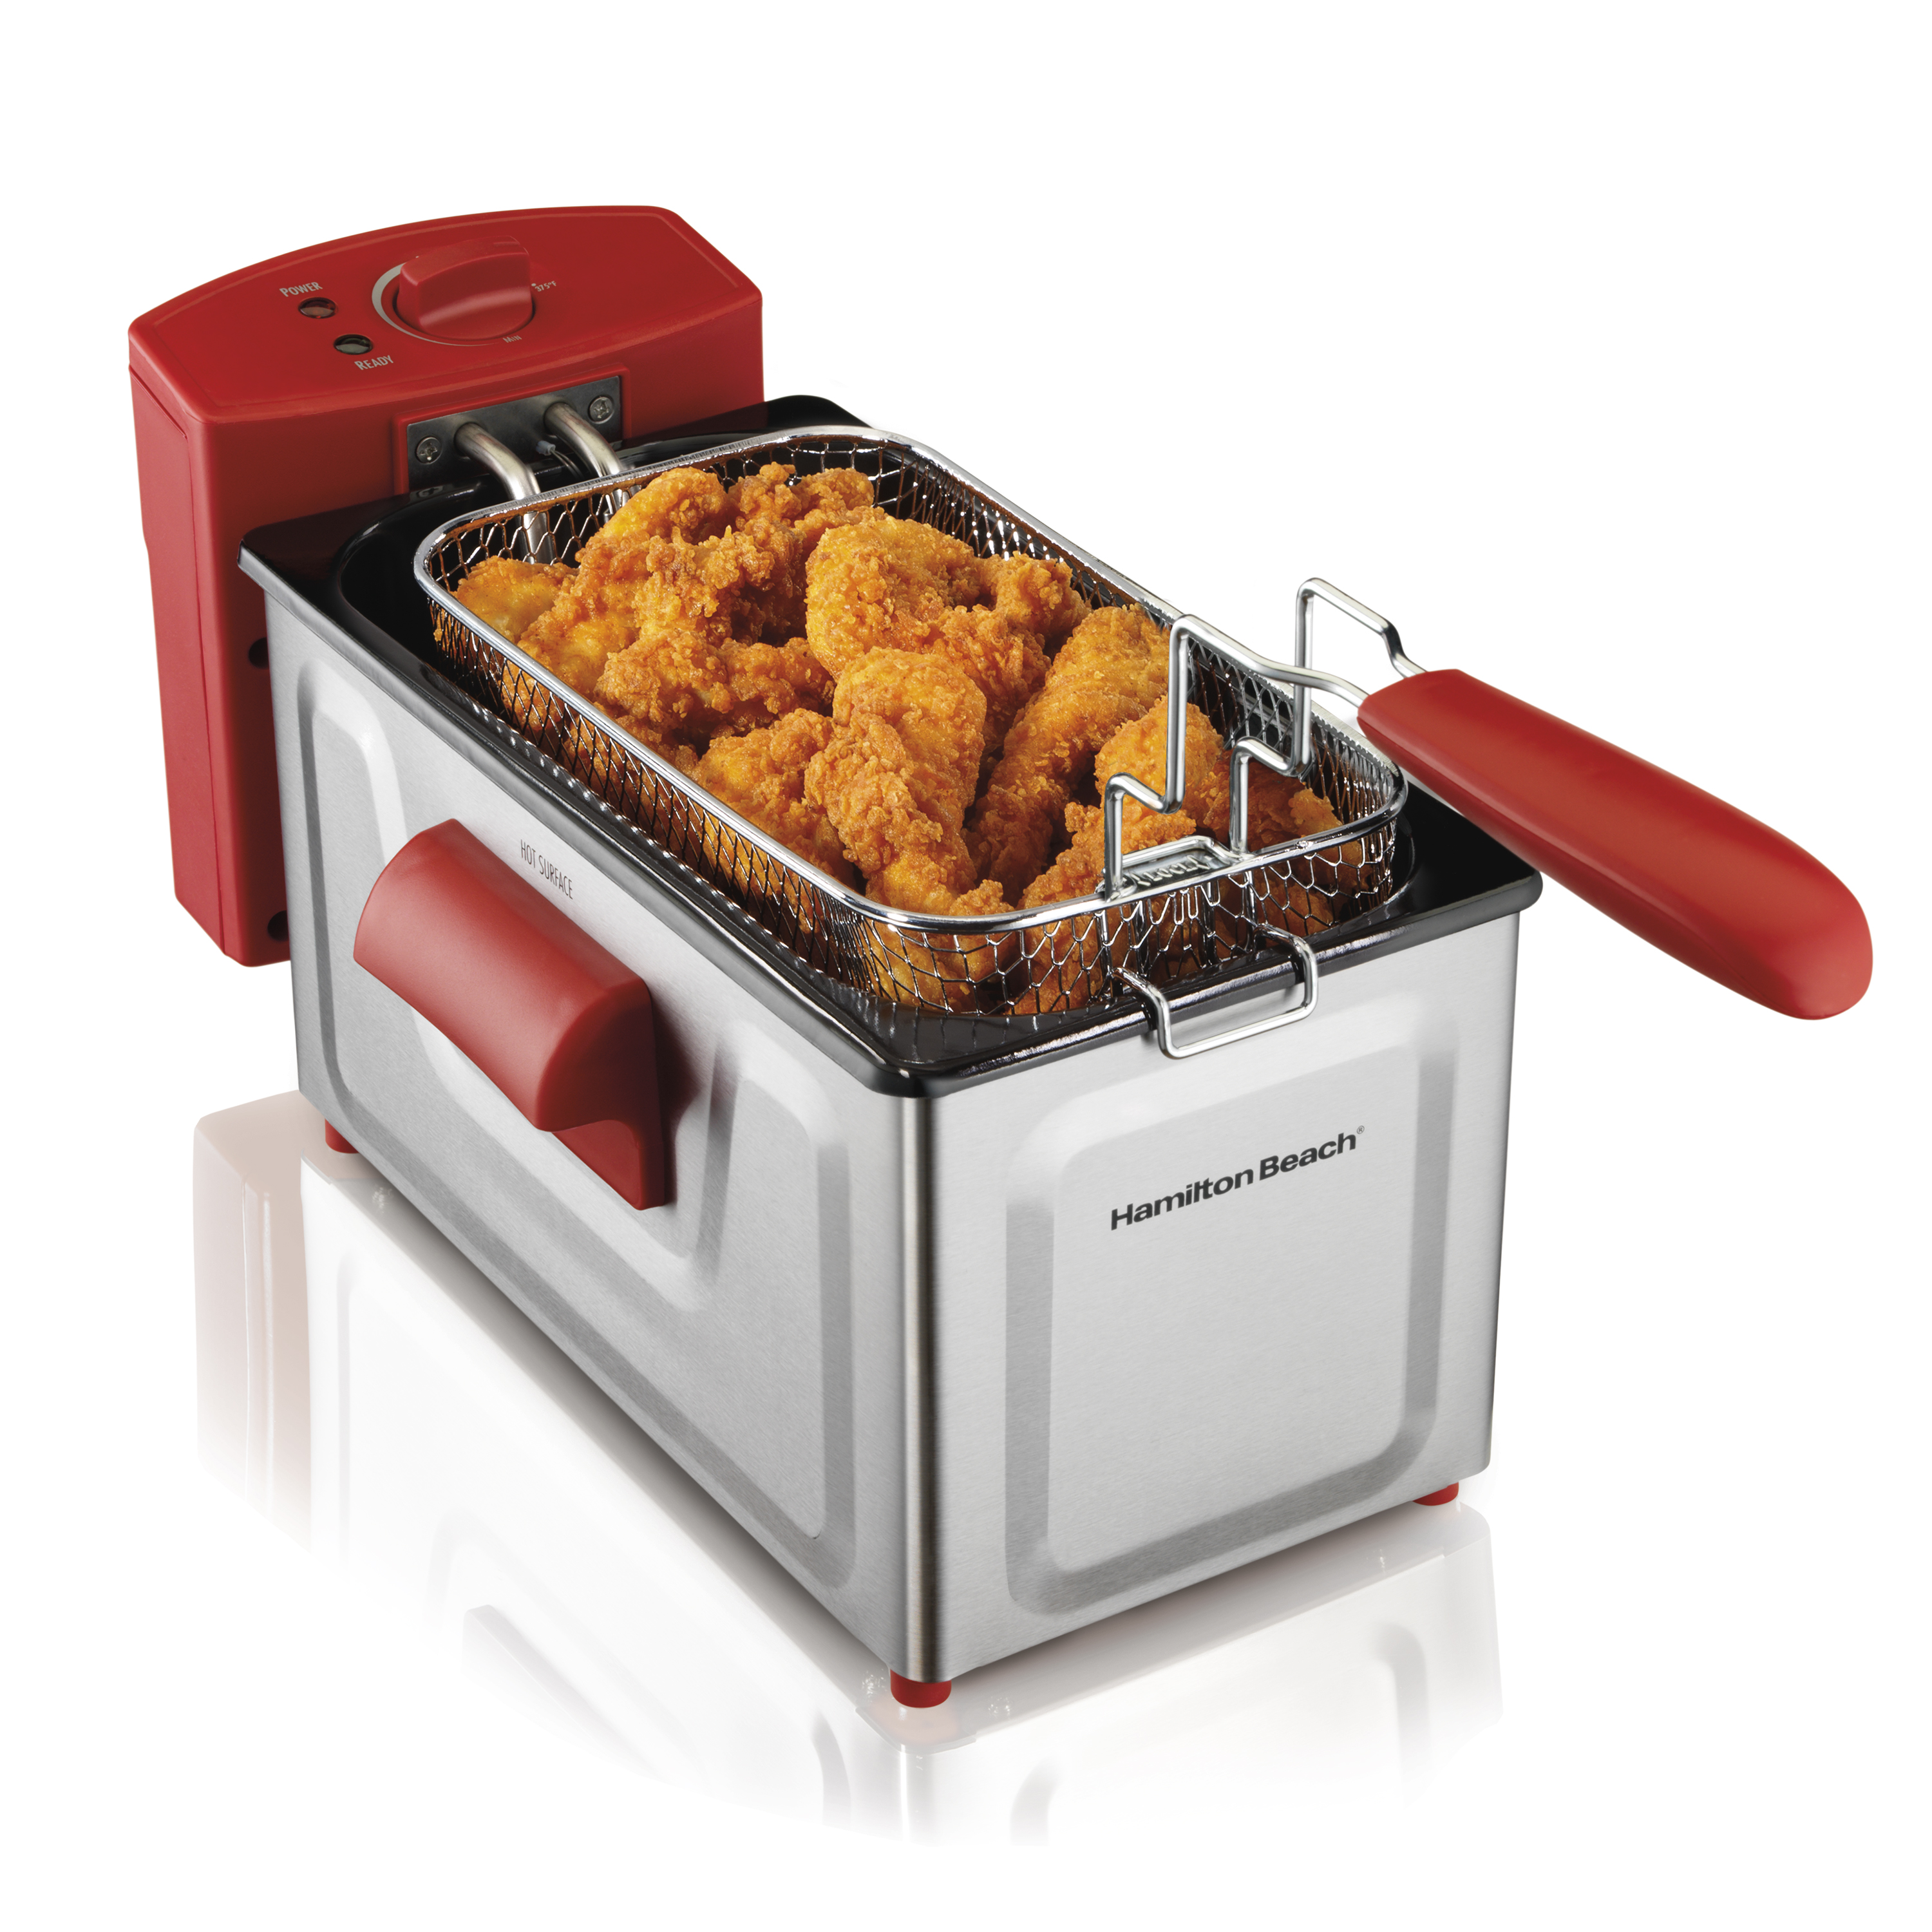 Hamilton Beach 2 Liter Professional Deep Fryer | Model# 35326